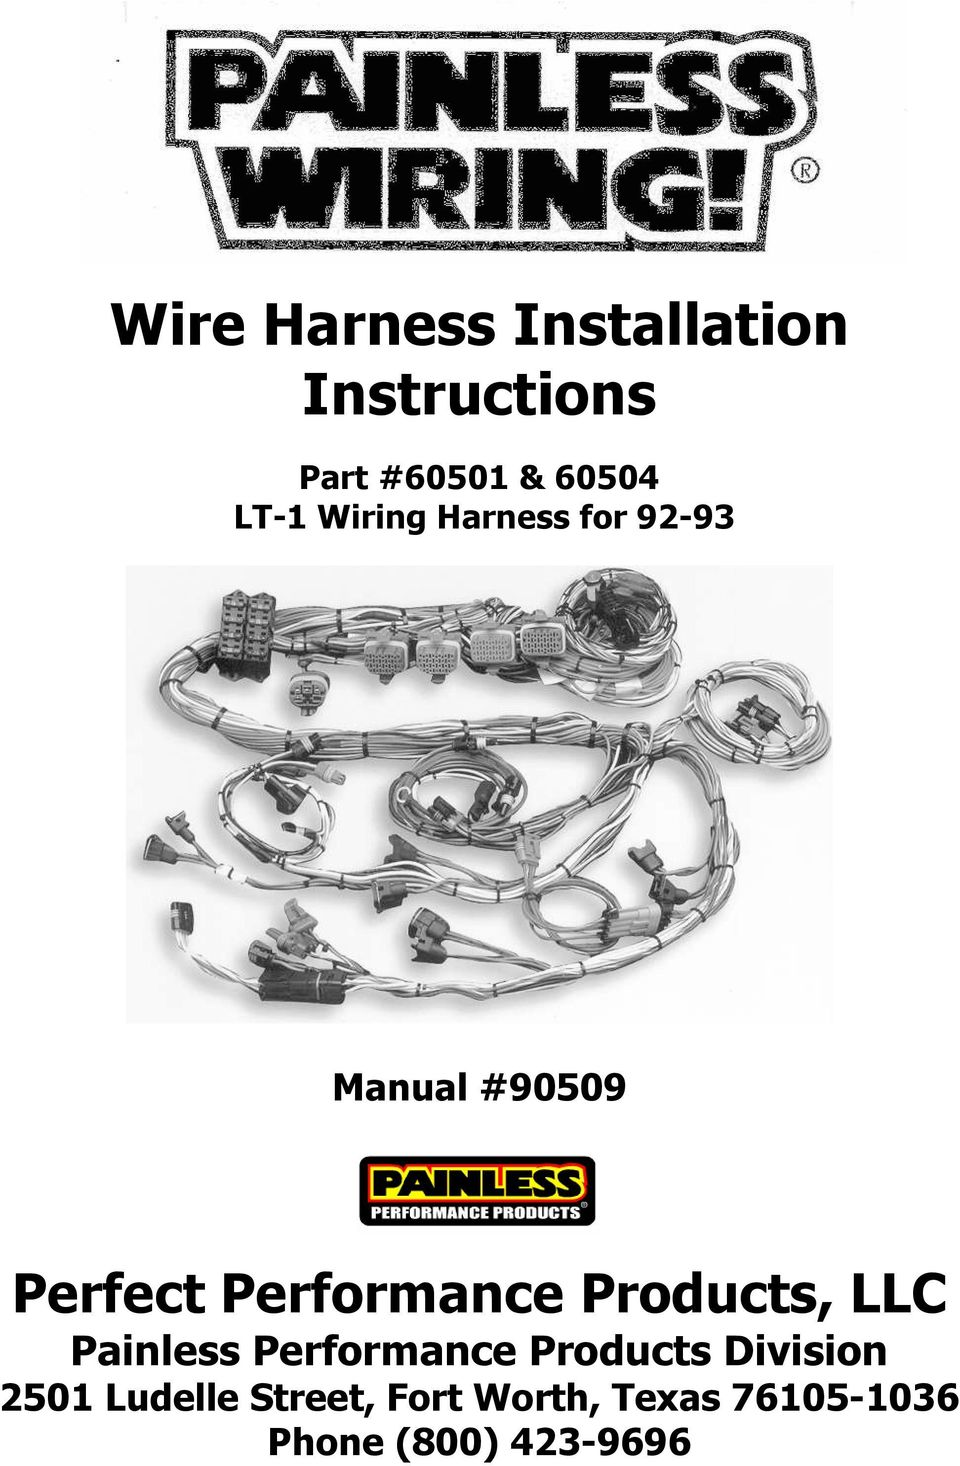 Wire Harness Installation Instructions Pdf Painless Wiring Company Performance Products Llc